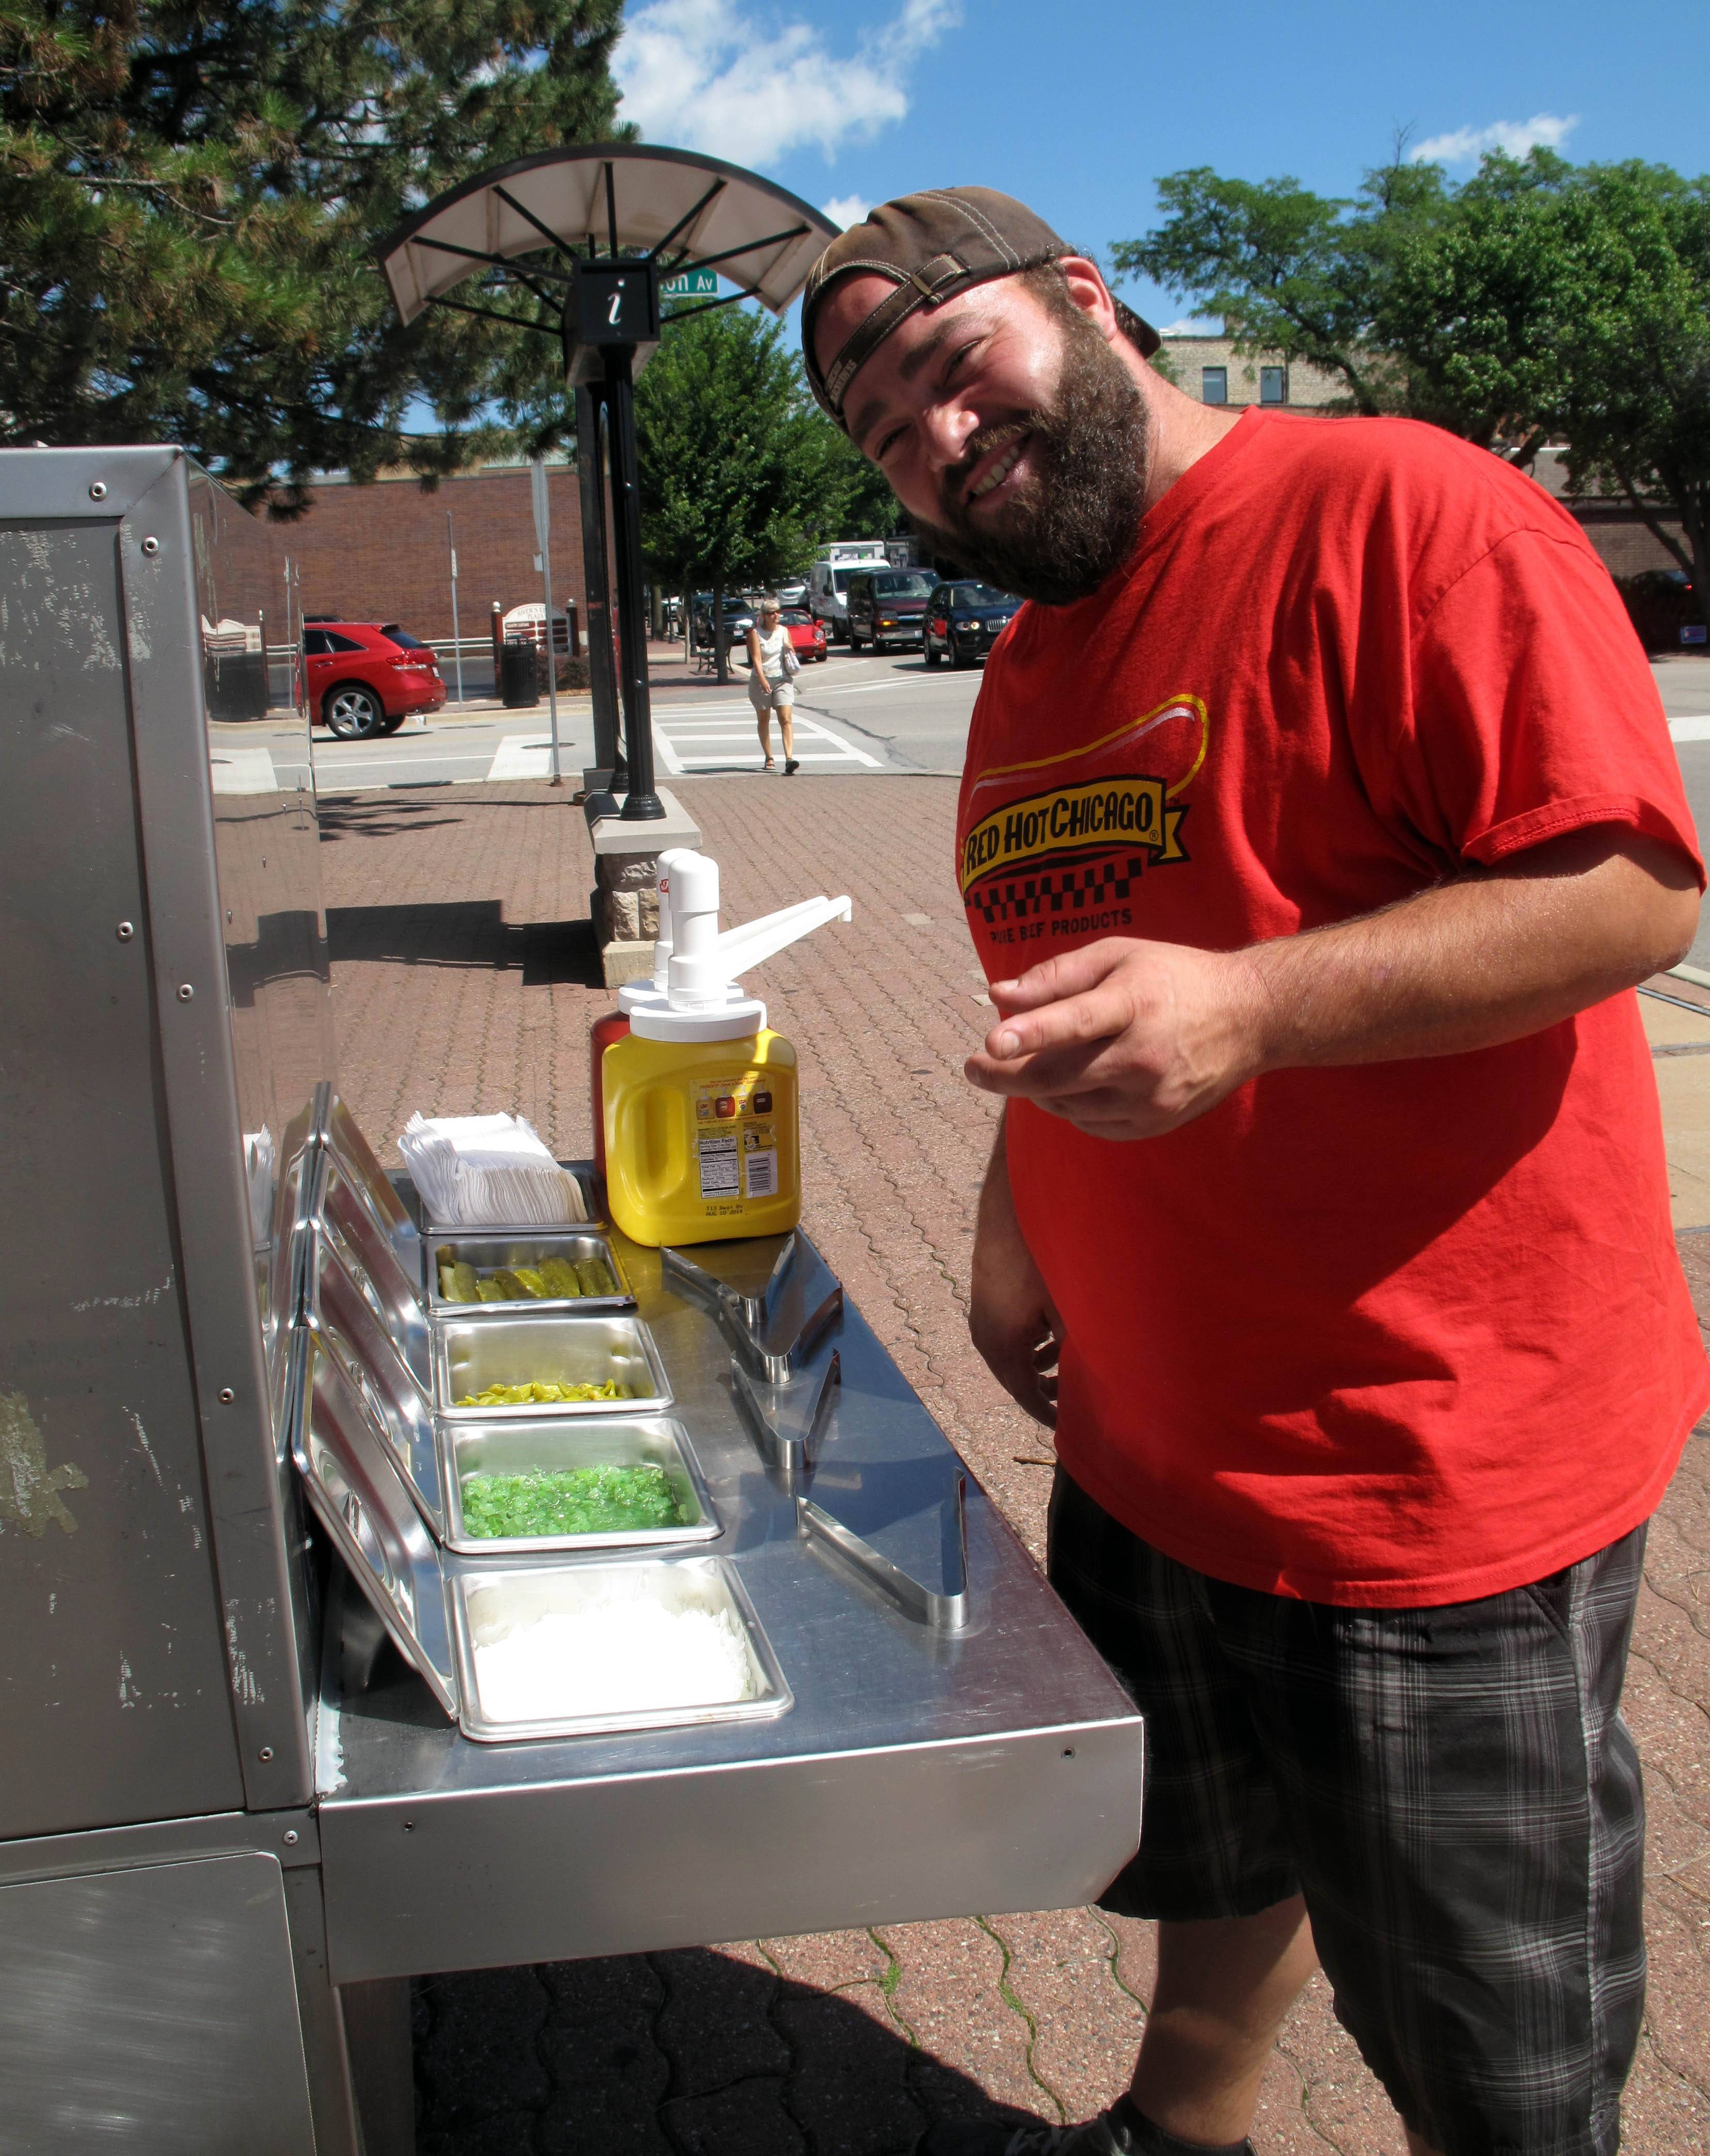 How many food carts are too many in downtown Naperville?